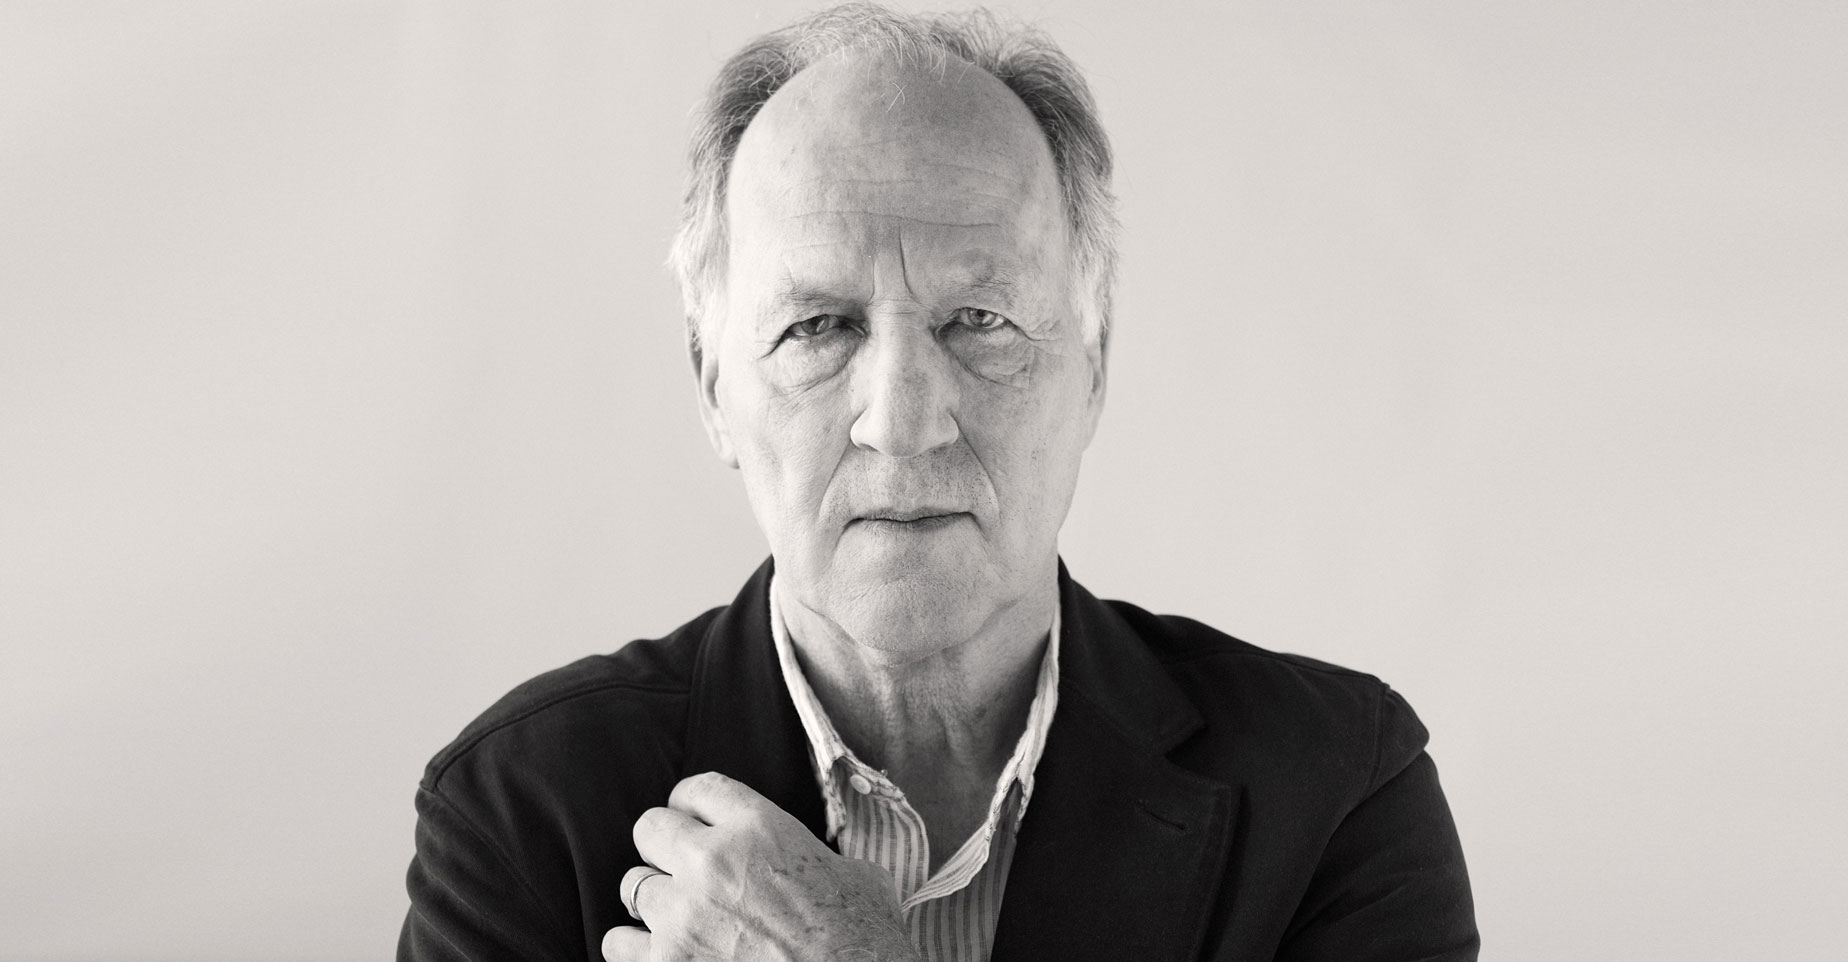 LOS 5 DOCUMENTALES FAVORITOS DE WERNER HERZOG